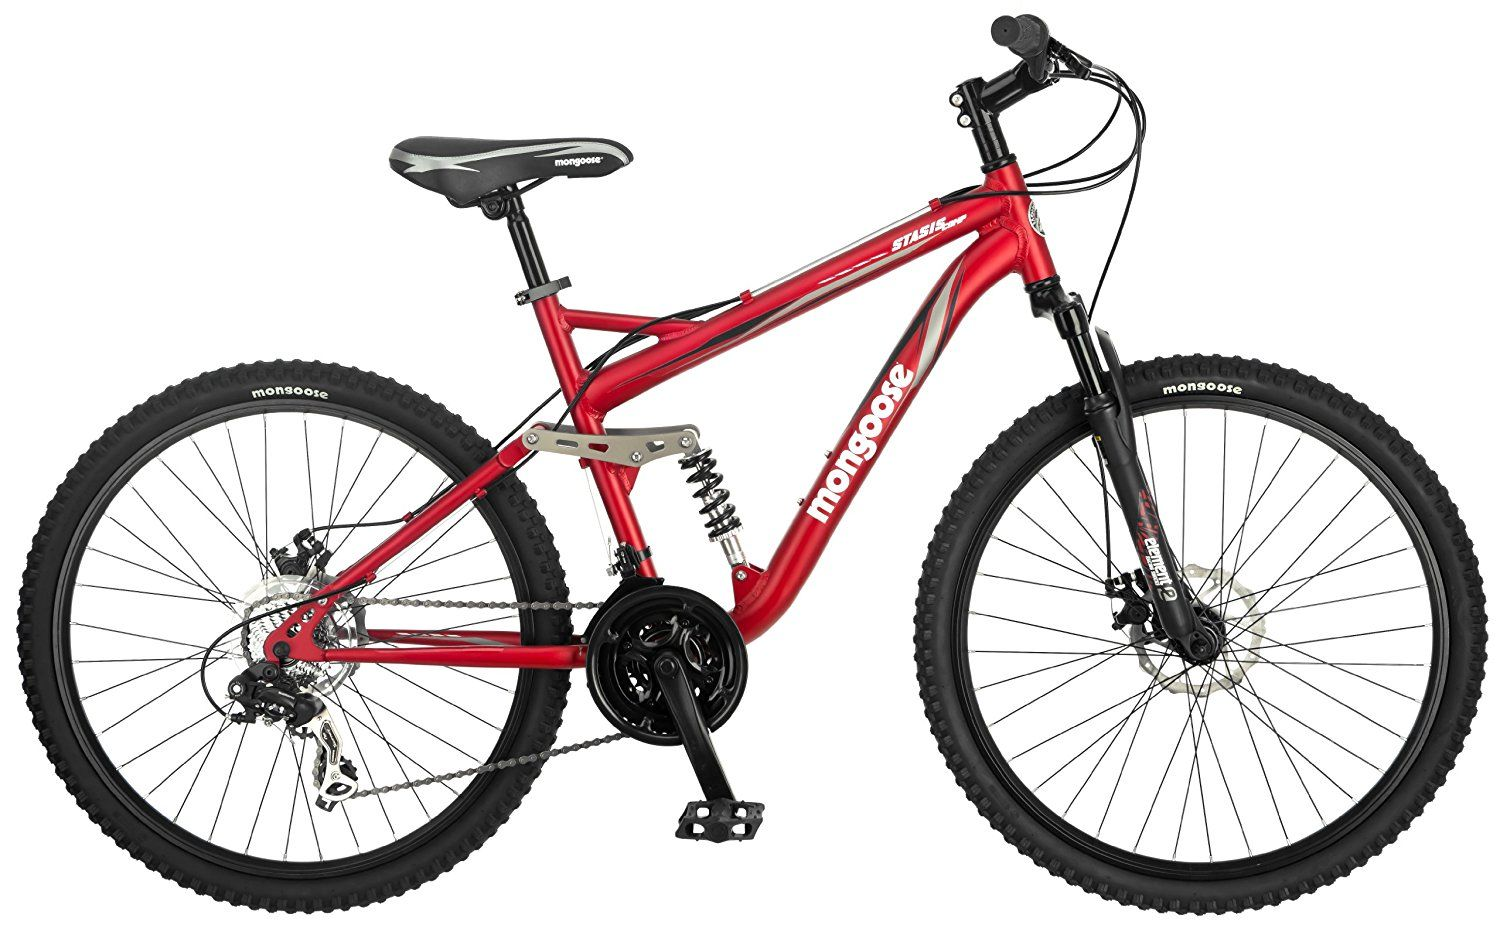 Best Mountain Bikes Under 600 Dollars In 2020 Recommended By